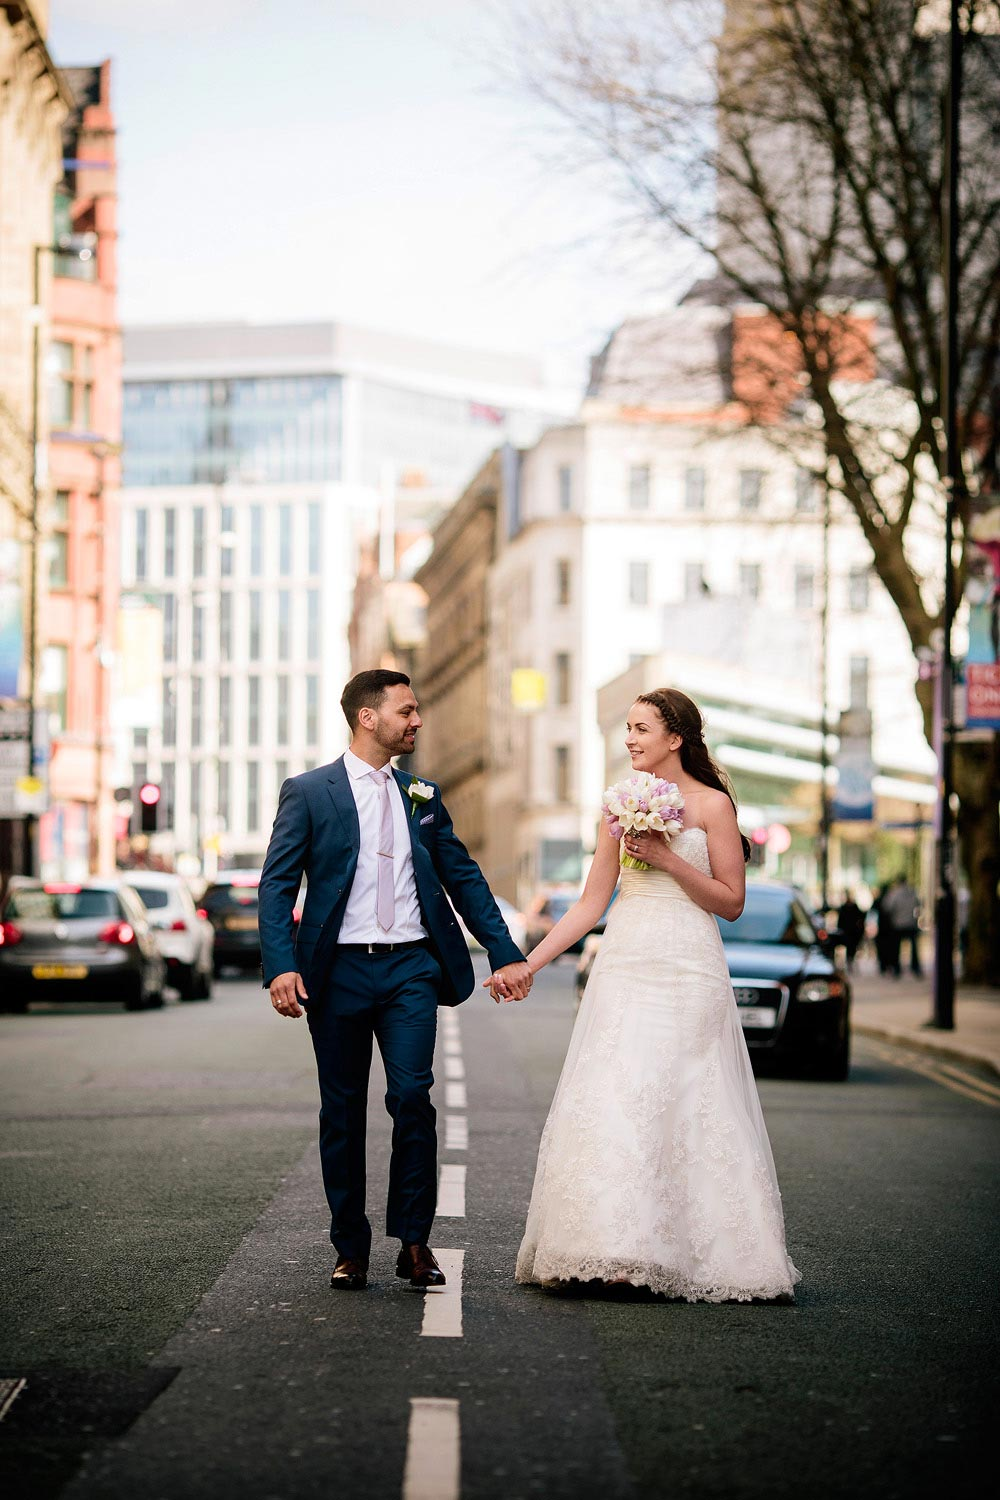 The bride and groom walk down Quay Street in Manchester city centre.